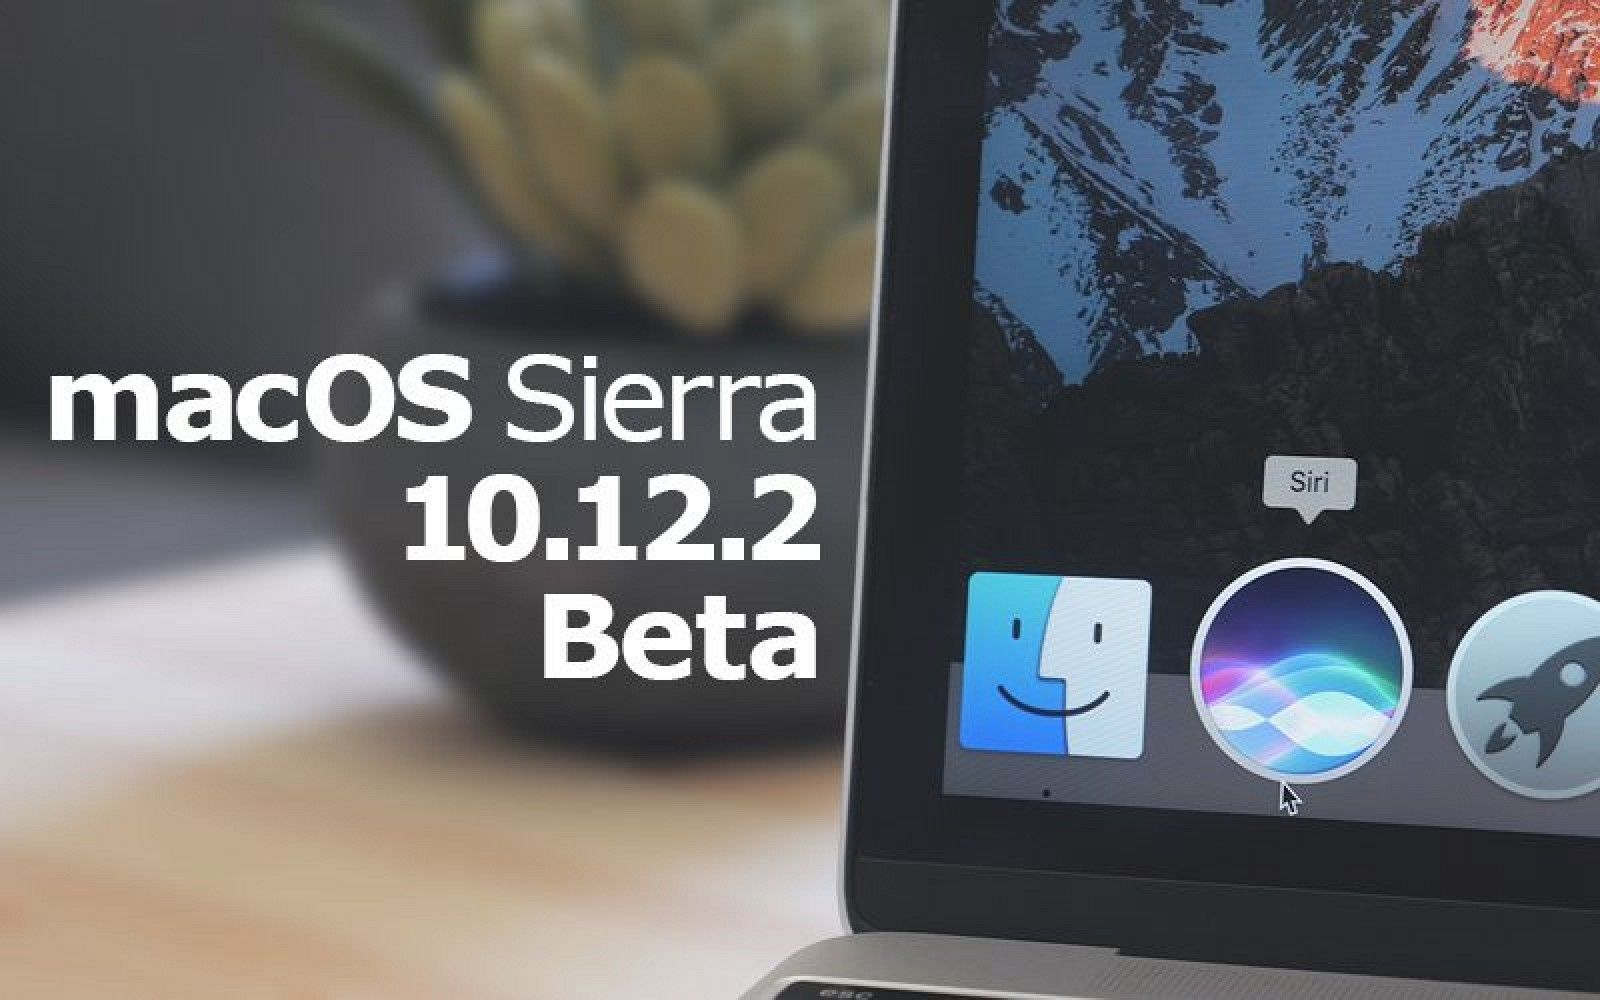 Apple Seeds First macOS Sierra 10.12.2 Beta to Developers